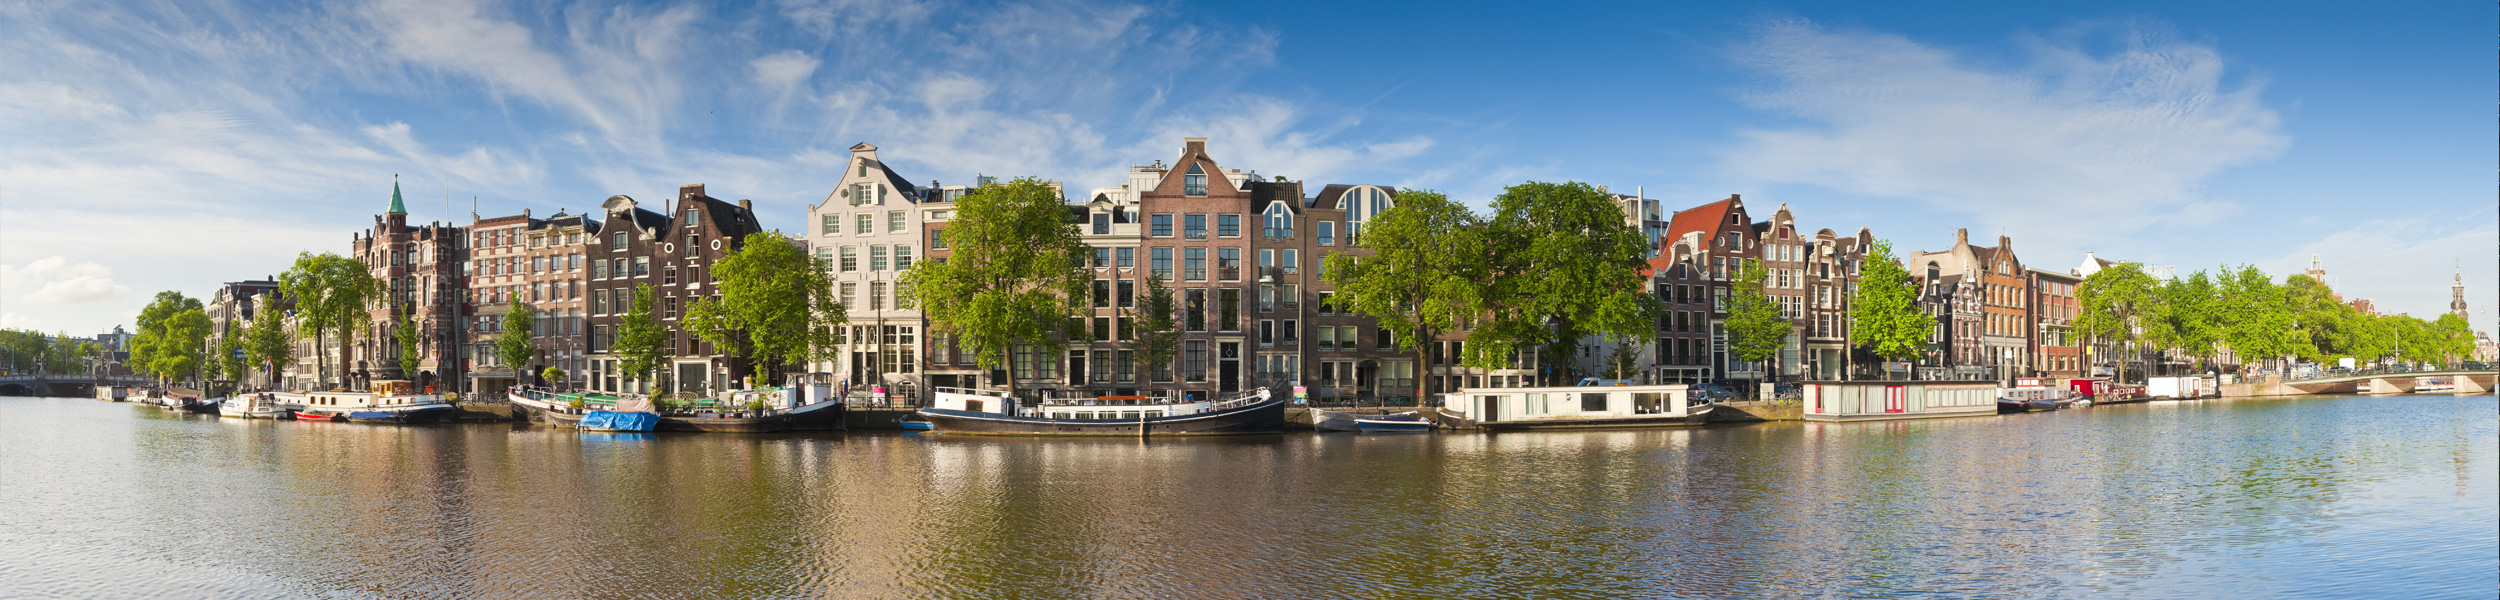 Senior Software Engineer - C++ Amsterdam, The Netherlands